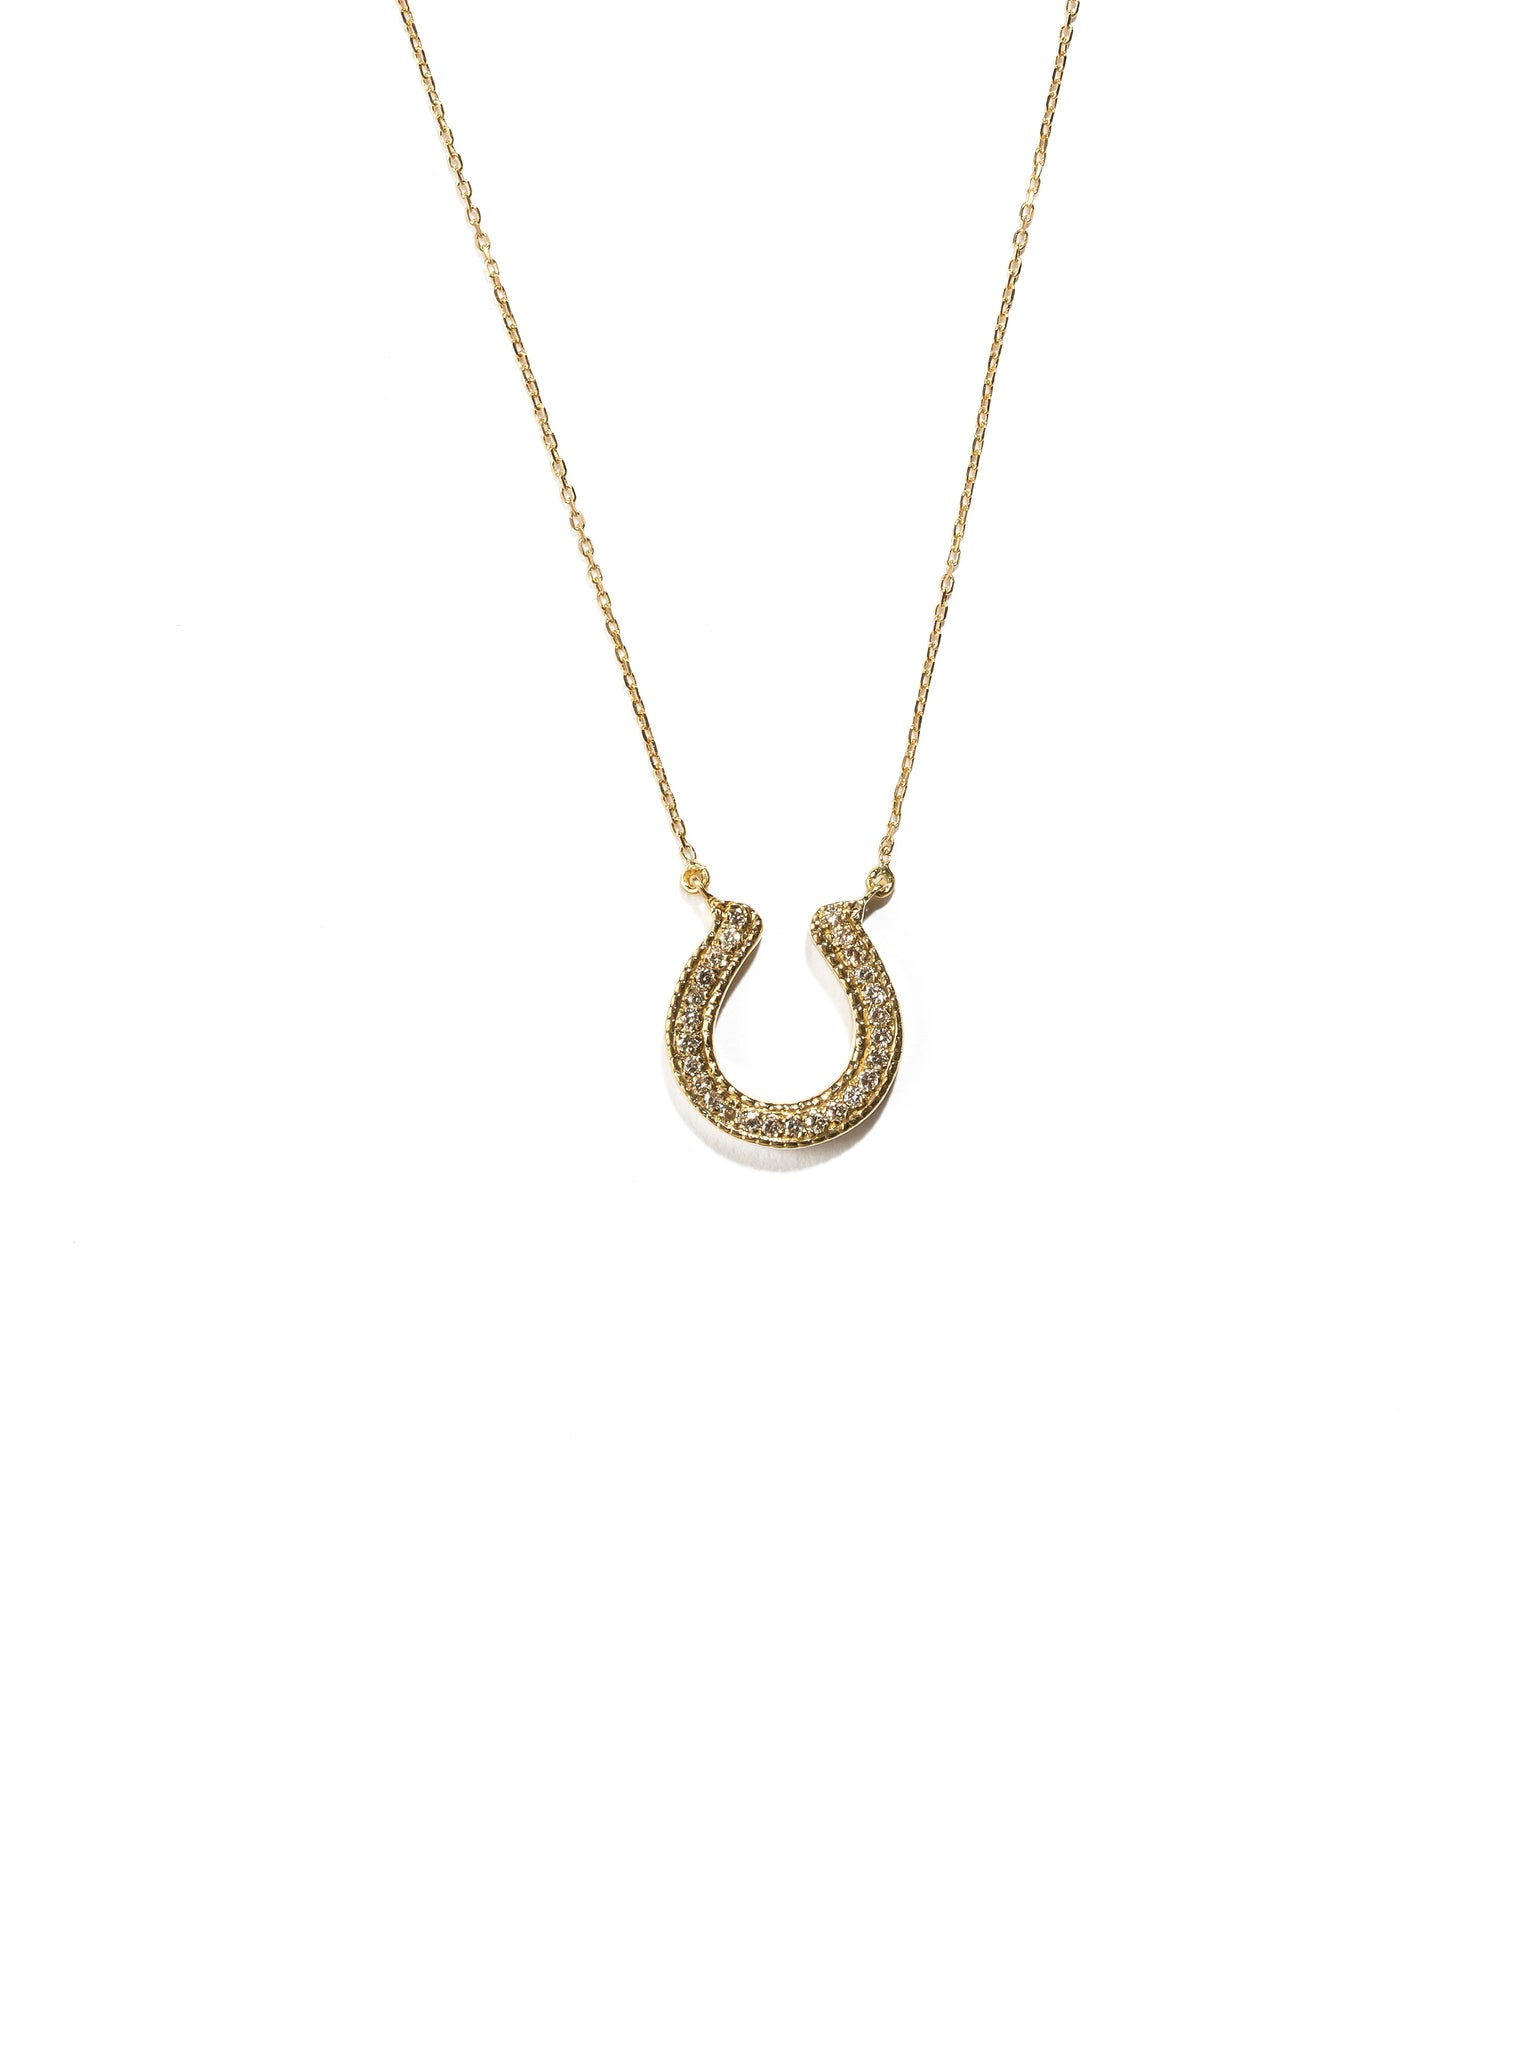 Horseshoe Necklace with Brown Diamonds